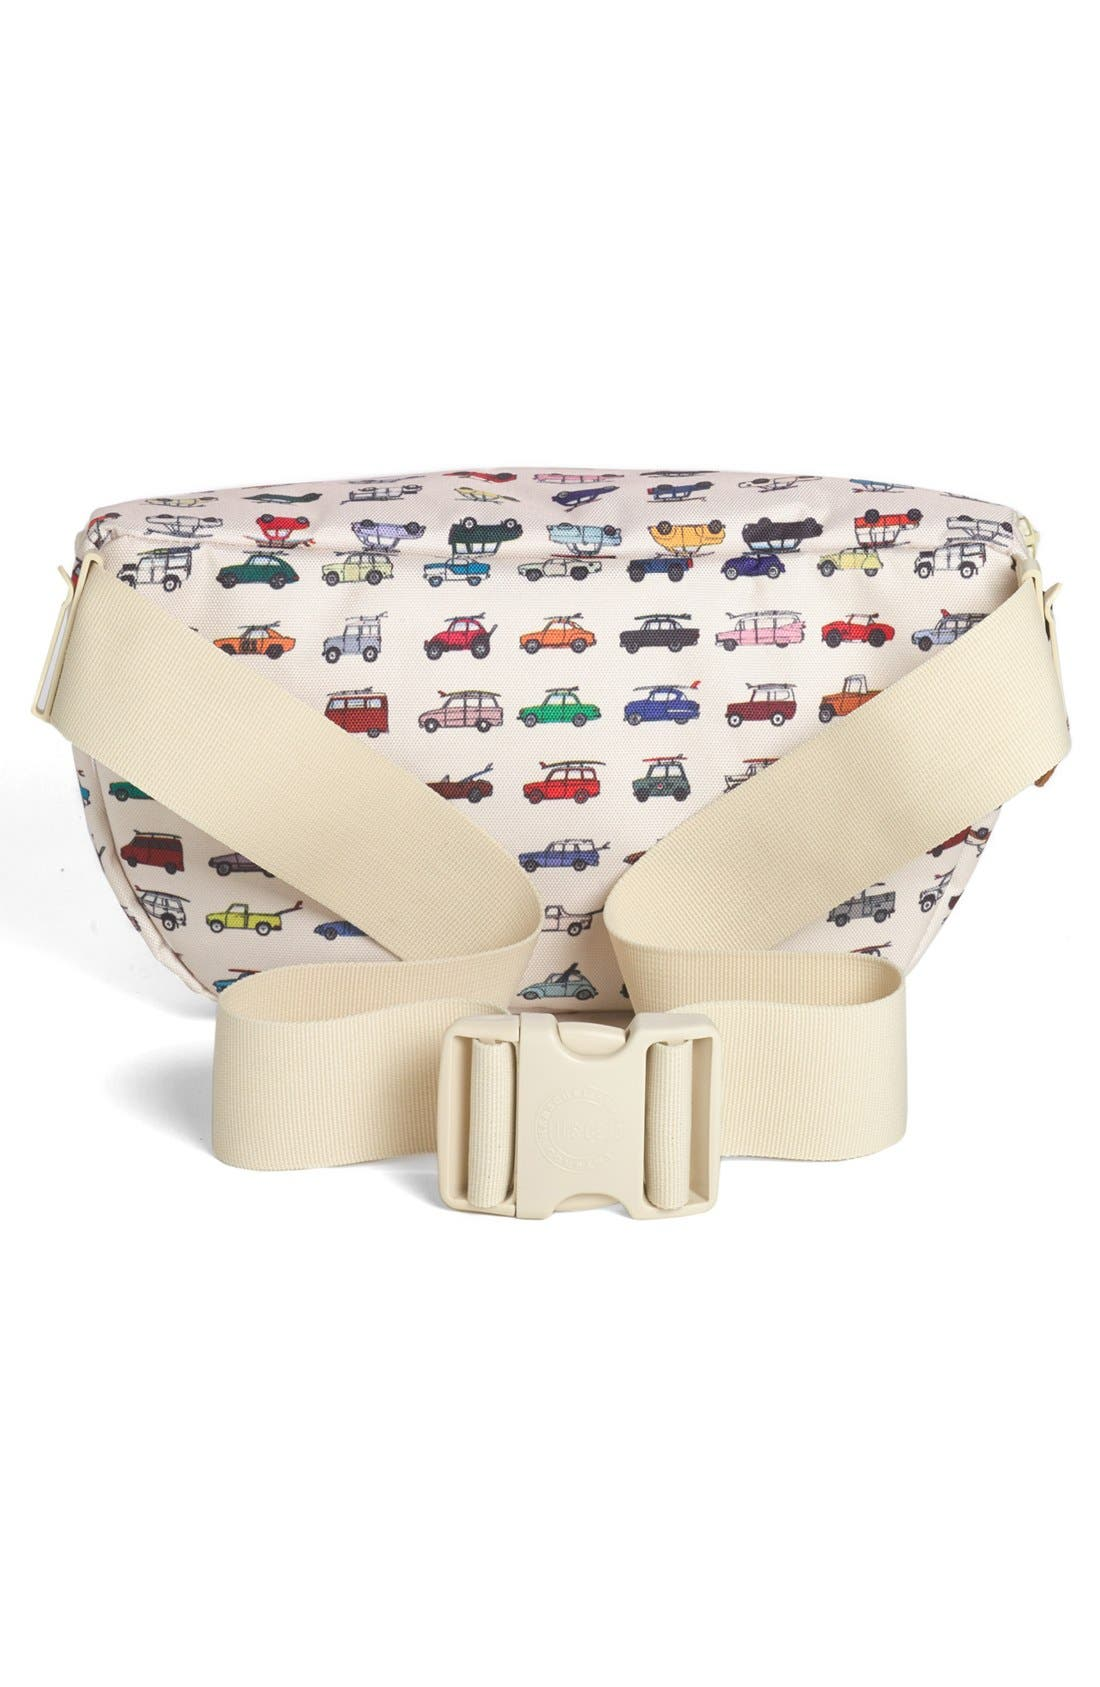 Alternate Image 2  - Herschel Supply Co. 'Sixteen - Rad Cars with Rad Surfboards Collection' Hip Pack